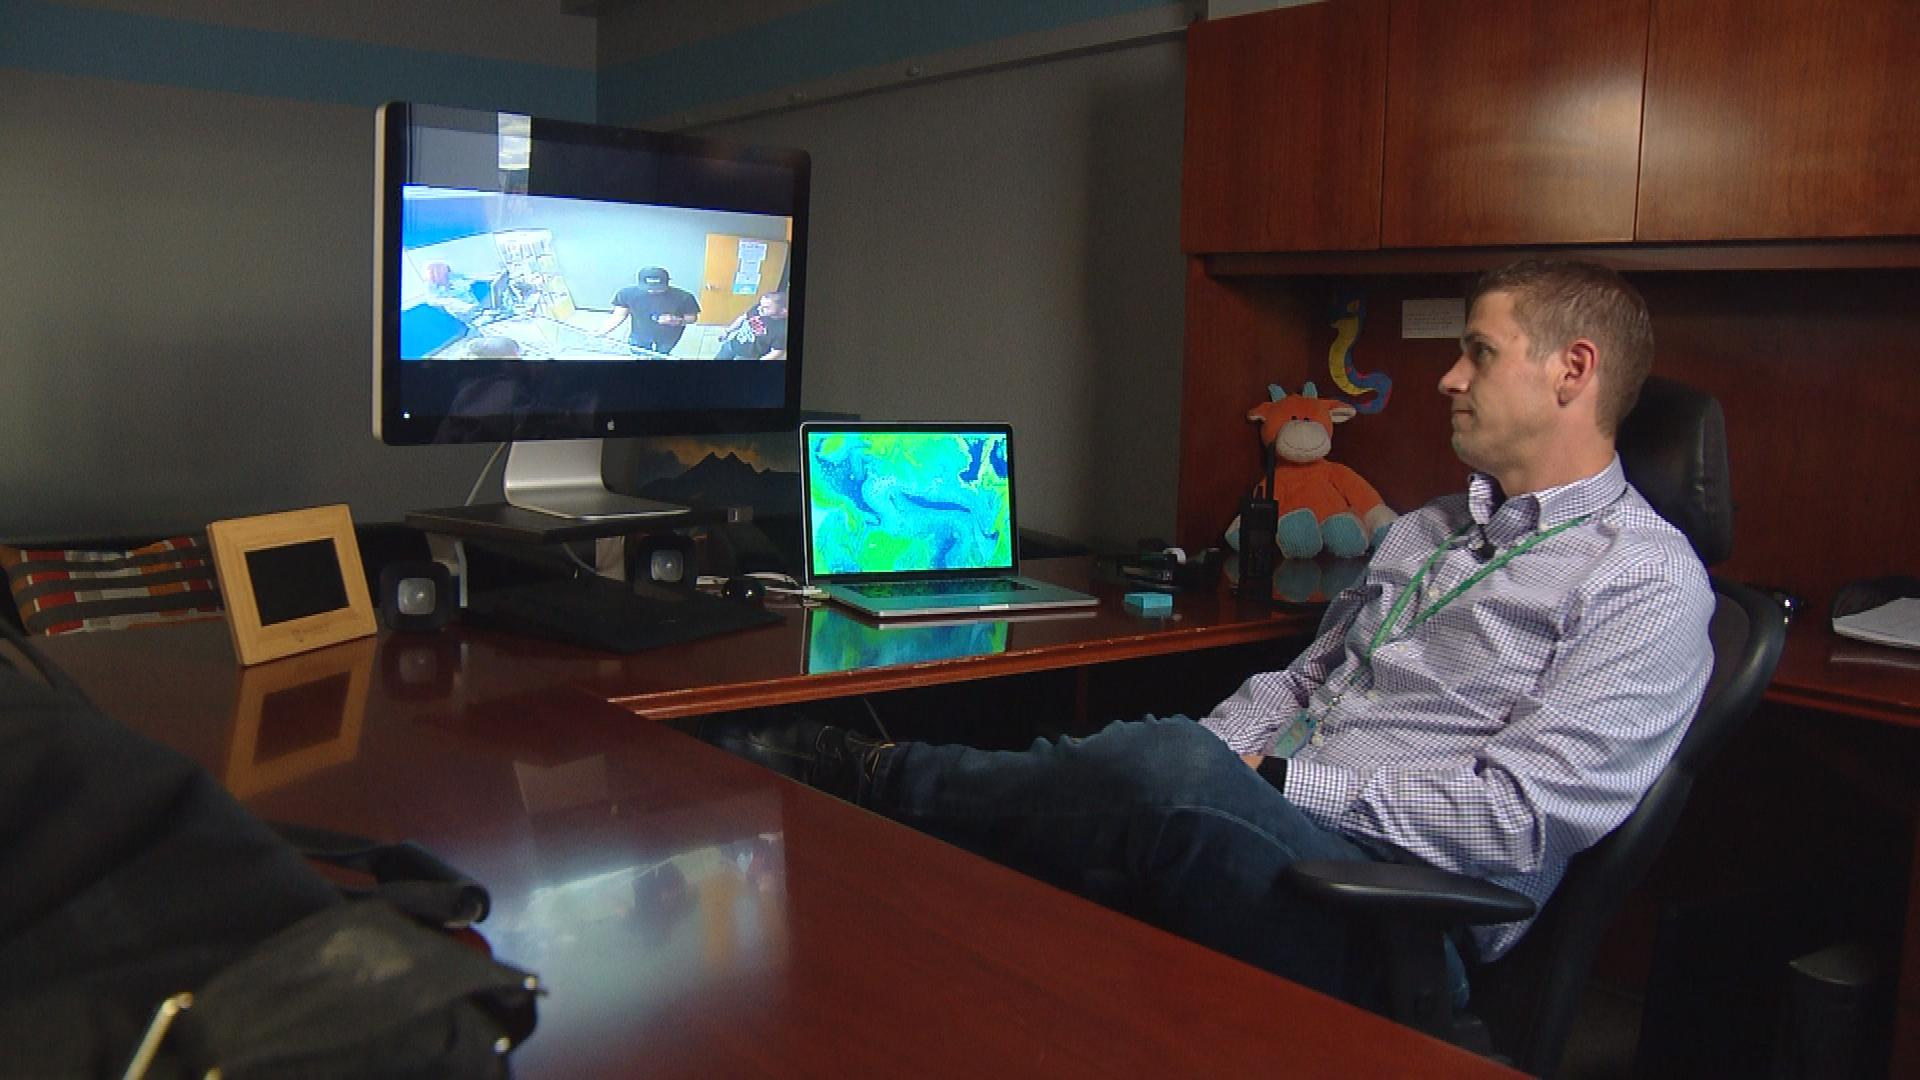 Ryan Fowler, president and owner of Redeye Releaf Shop, watches video of his employees selling to an underage customer (credit: CBS)